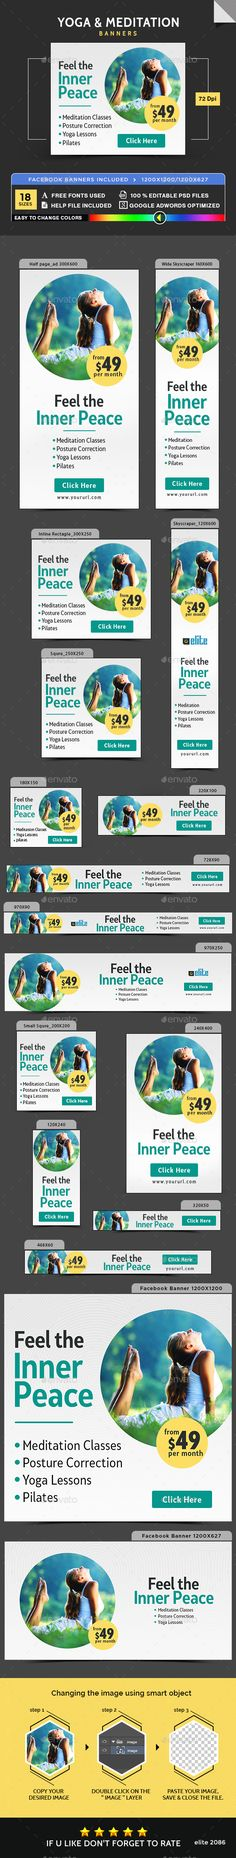 Yoga & Meditation Banners - Banners & Ads Web Elements Download here : https://graphicriver.net/item/yoga-meditation-banners/19263002?s_rank=78&ref=Al-fatih